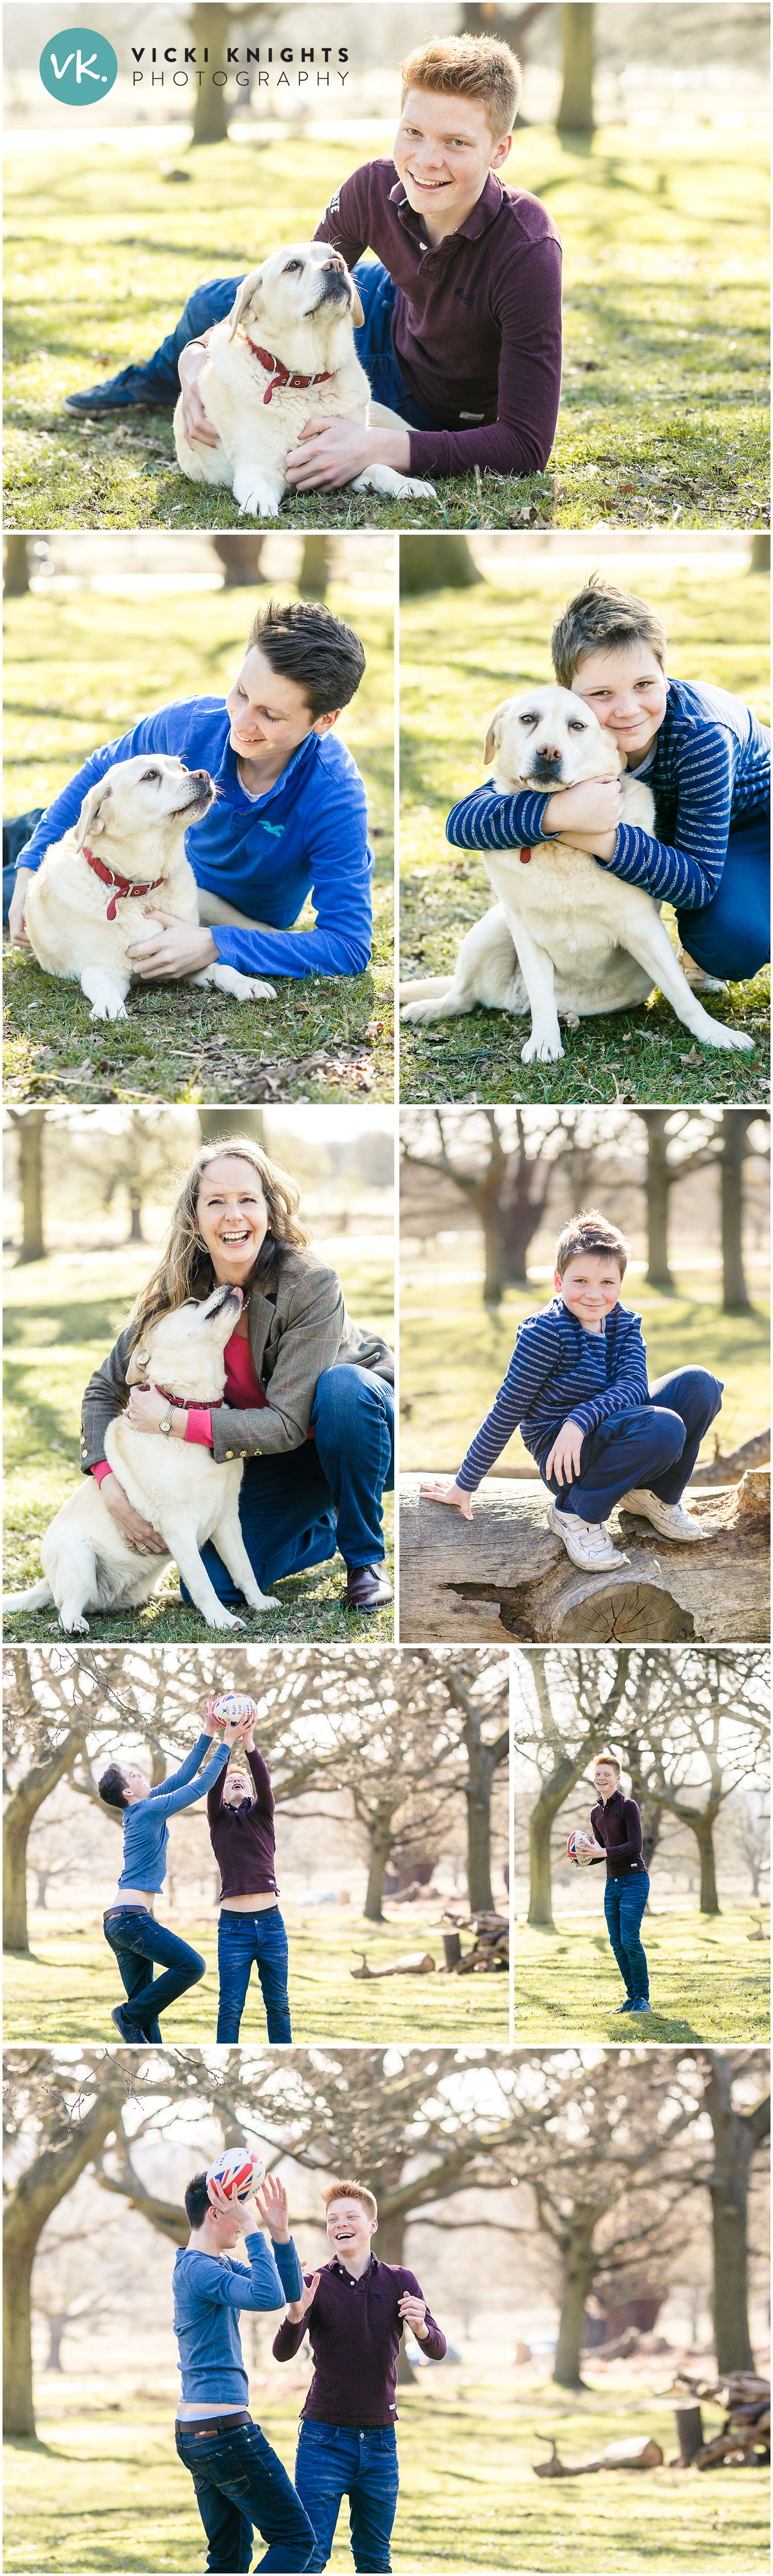 teenager-family-photo-shoot-vicki-knights-surrey